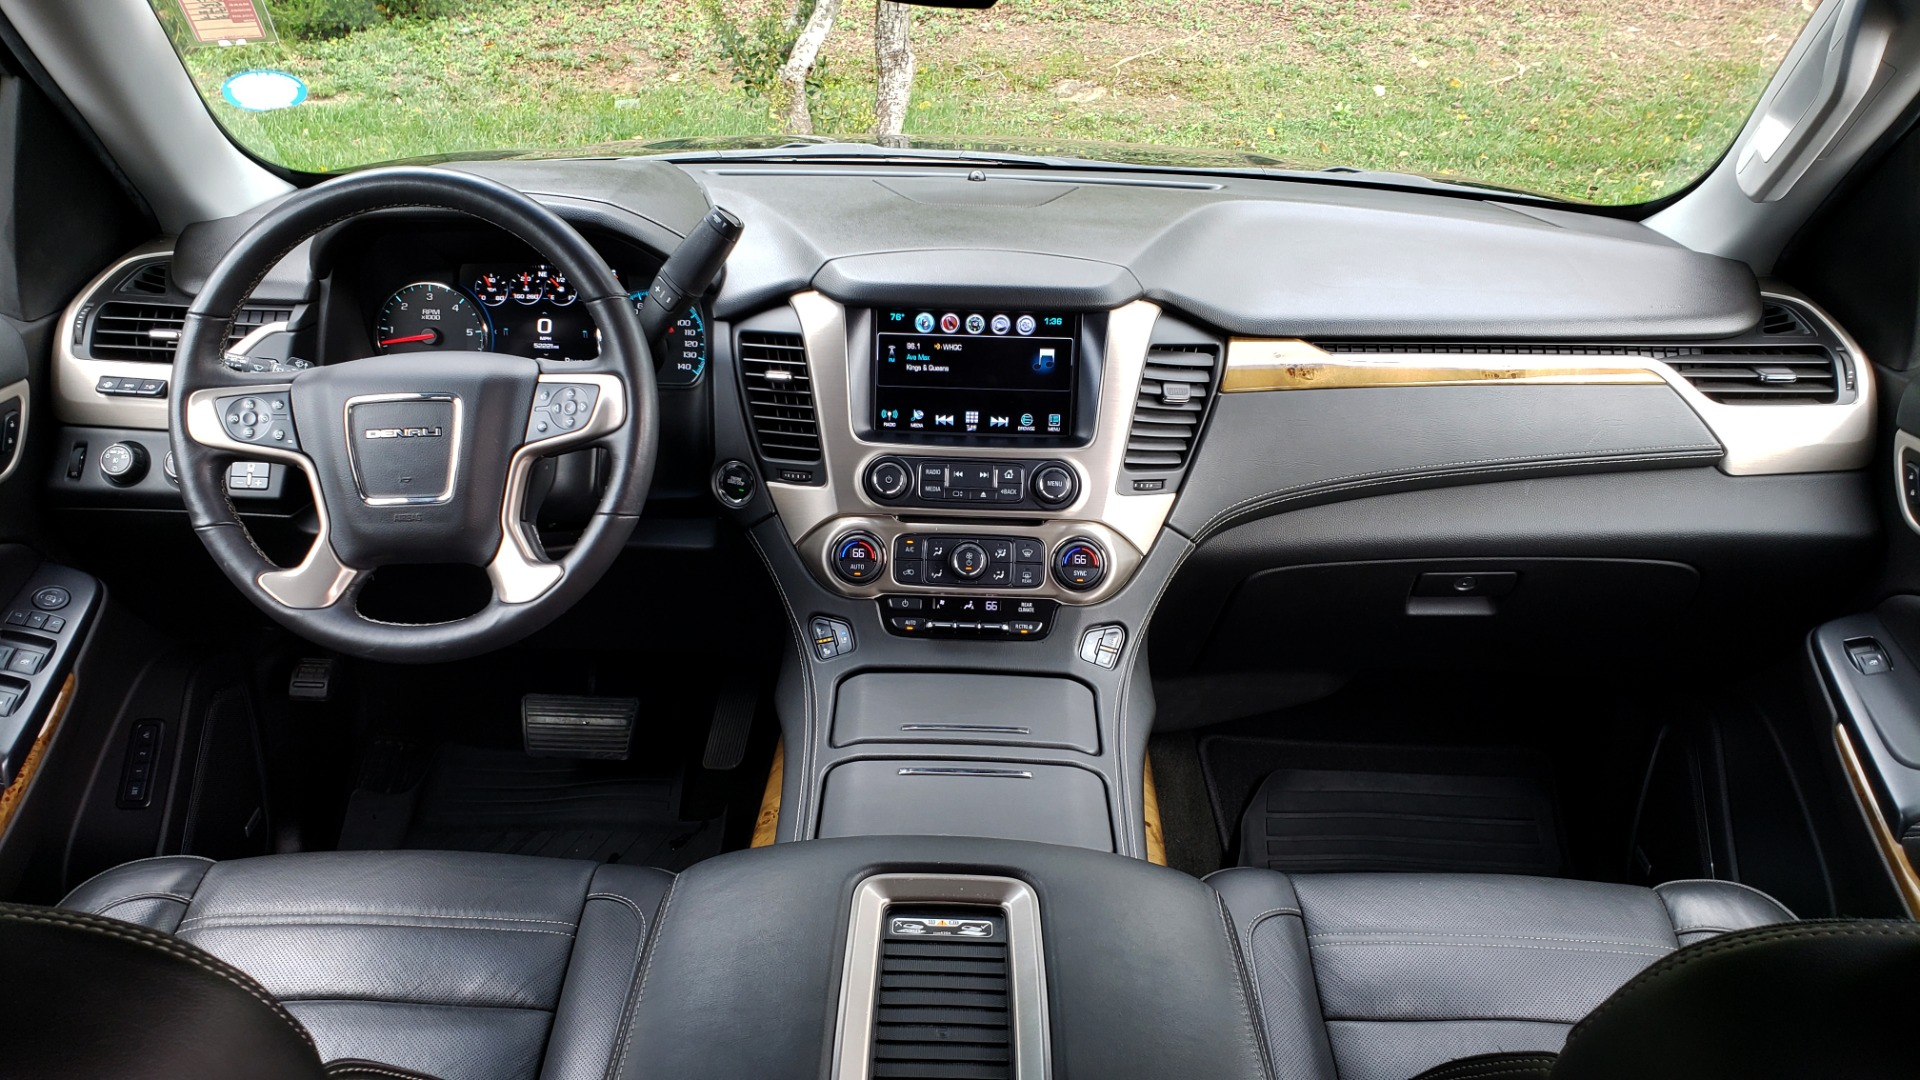 Used 2017 GMC YUKON XL DENALI 4WD / NAV / SUNROOF / ENT / 3-ROWS / BOSE / REARVIEW for sale Sold at Formula Imports in Charlotte NC 28227 89